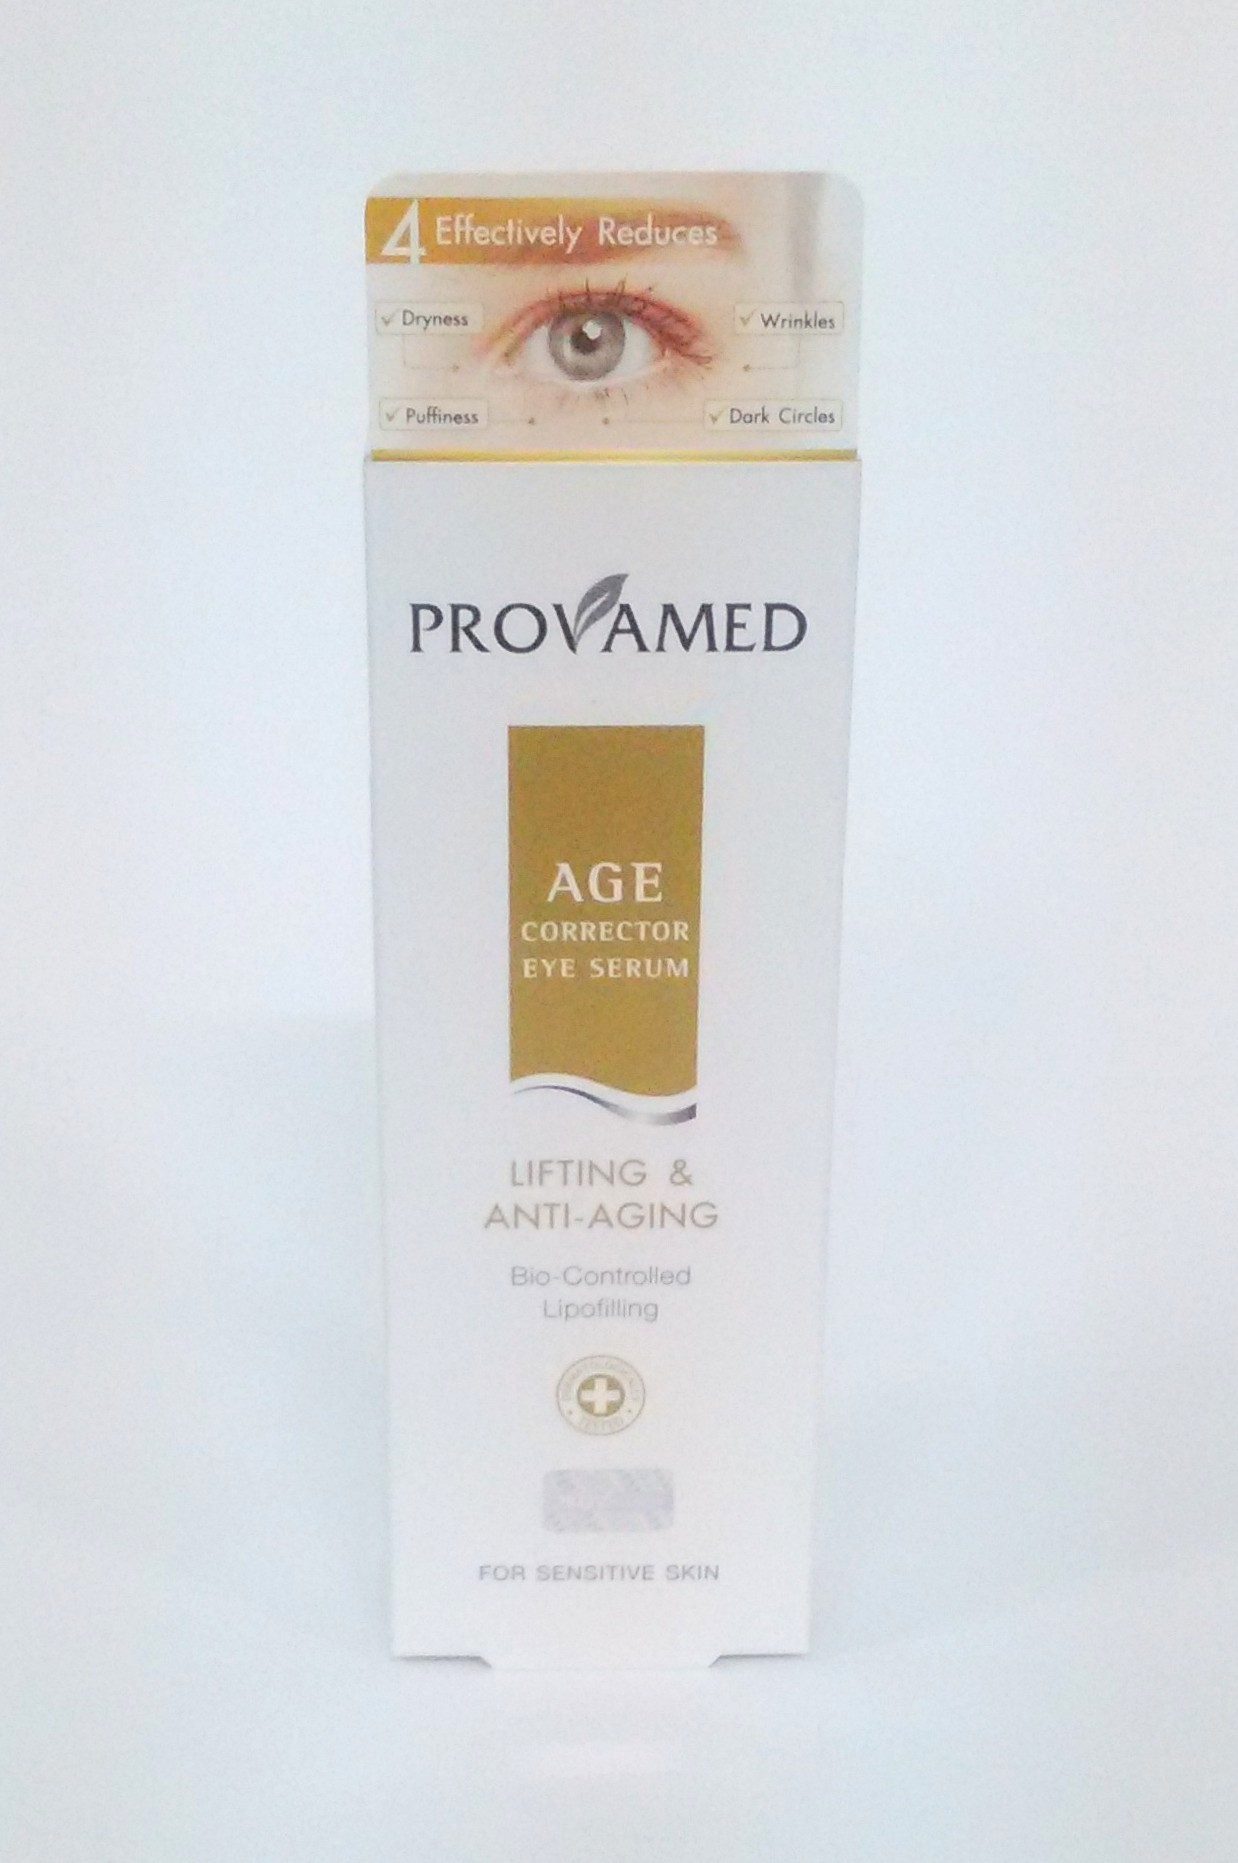 PROVAMED AGE CORRECTOR EYE SERUM